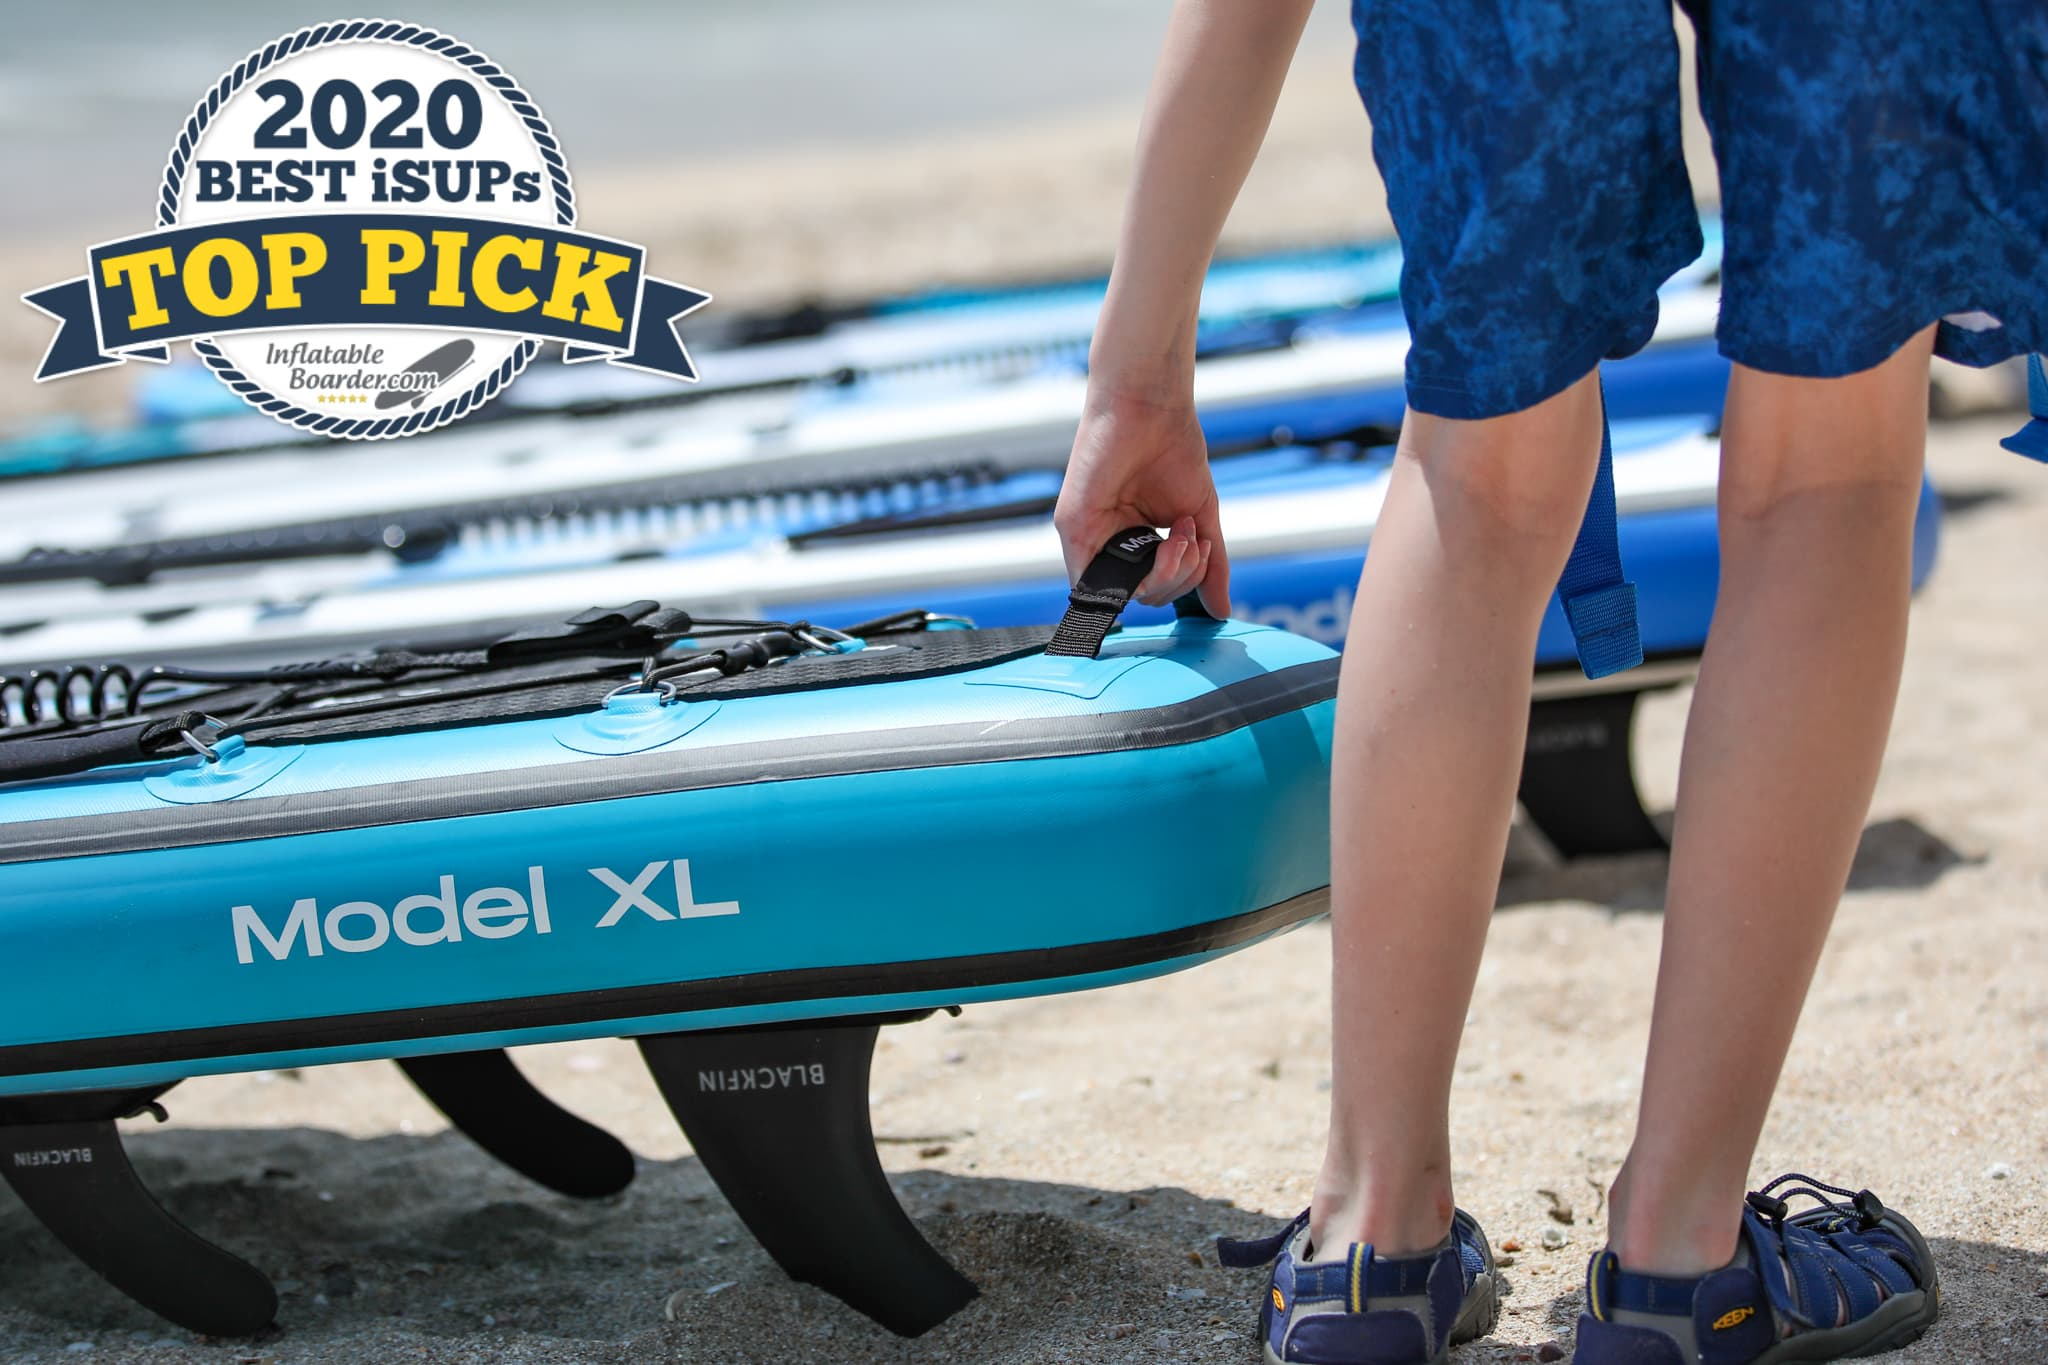 """Blackfin Model XL paddle board review - a badge reads """"2020 Best iSUPs TOP PICK"""""""